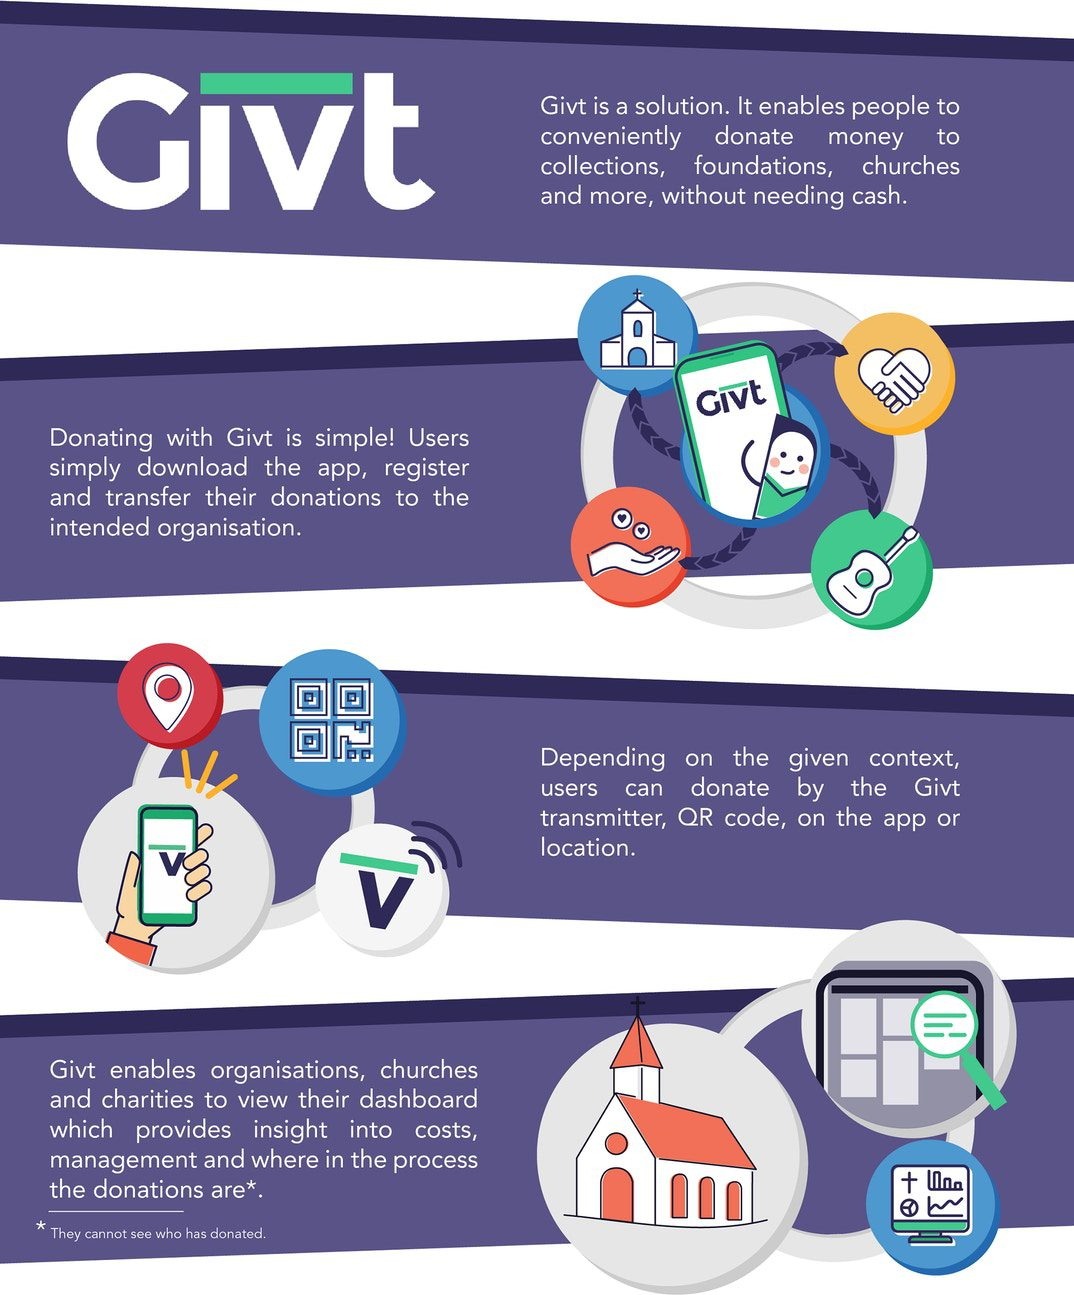 Givt crowdfunding